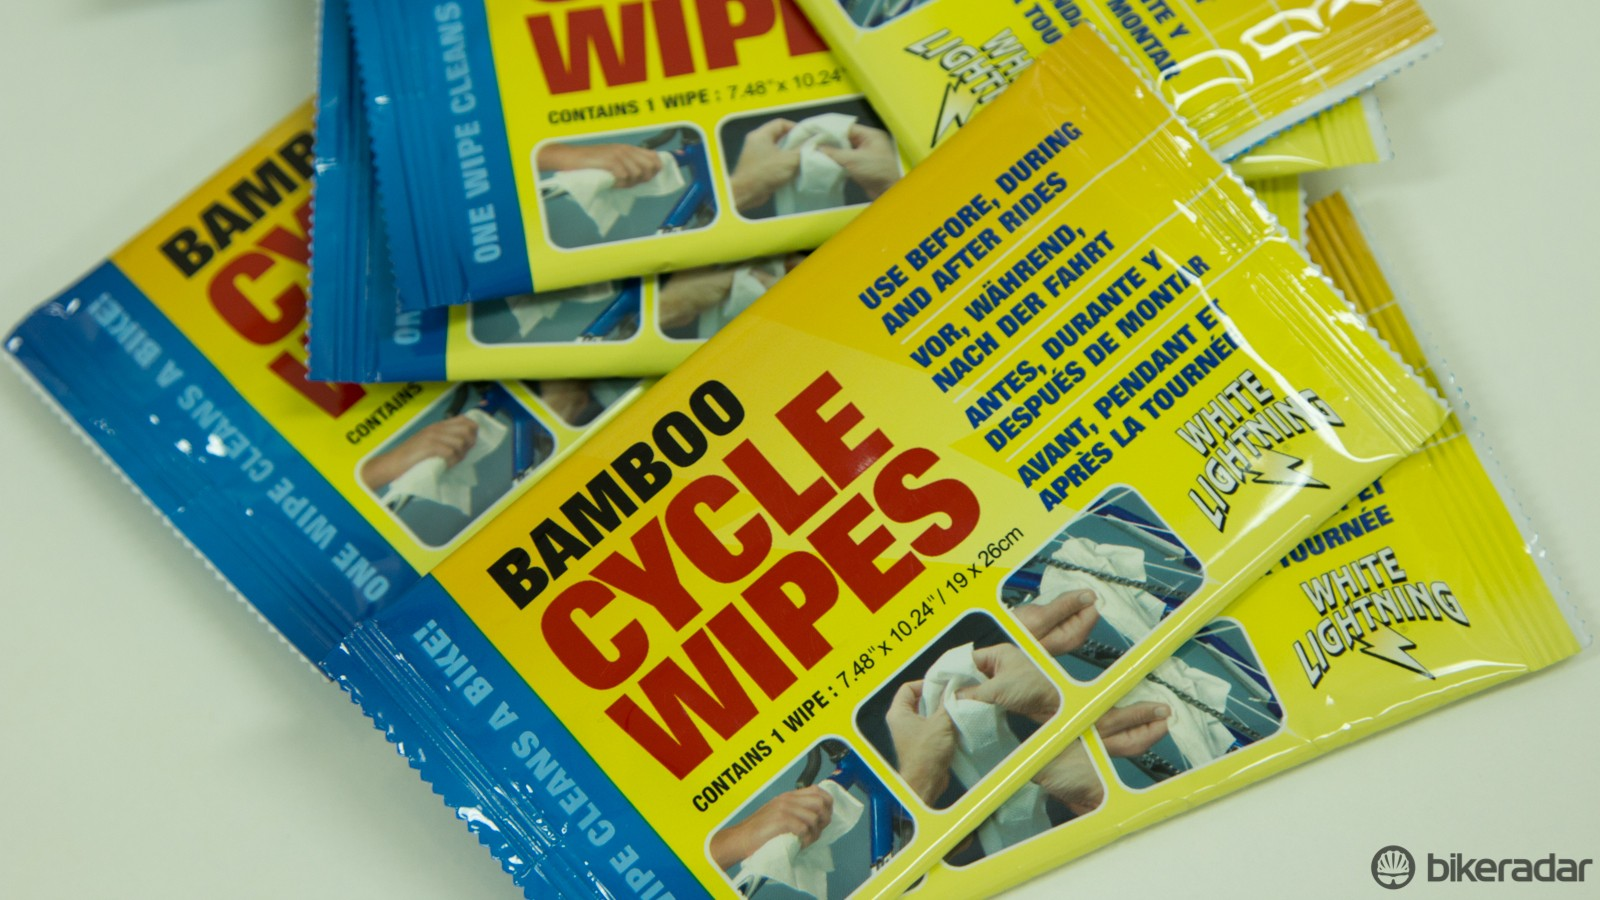 The White Lightning Bamboo wipes are small enough to stash inside your saddle bag or pocket incase of a dirty repair